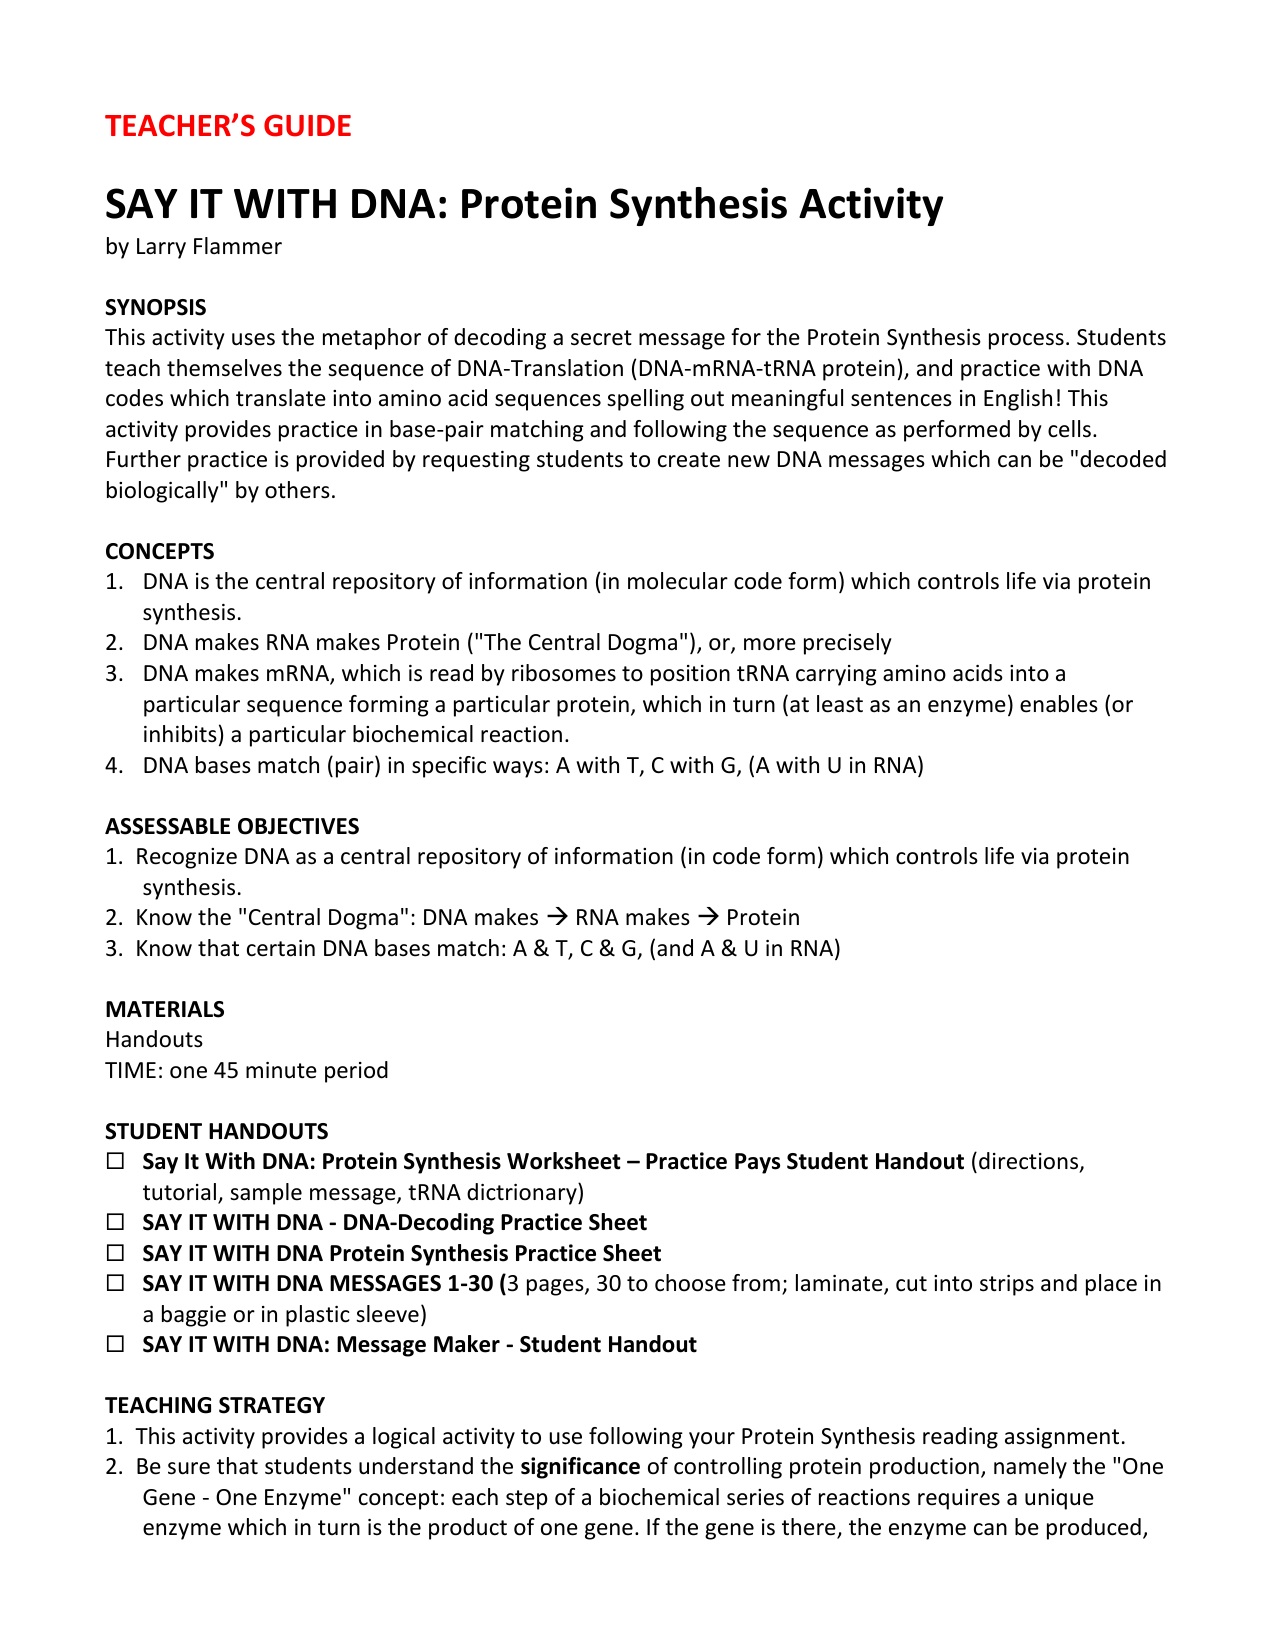 Say It With Dna Protein Synthesis Worksheet Answers